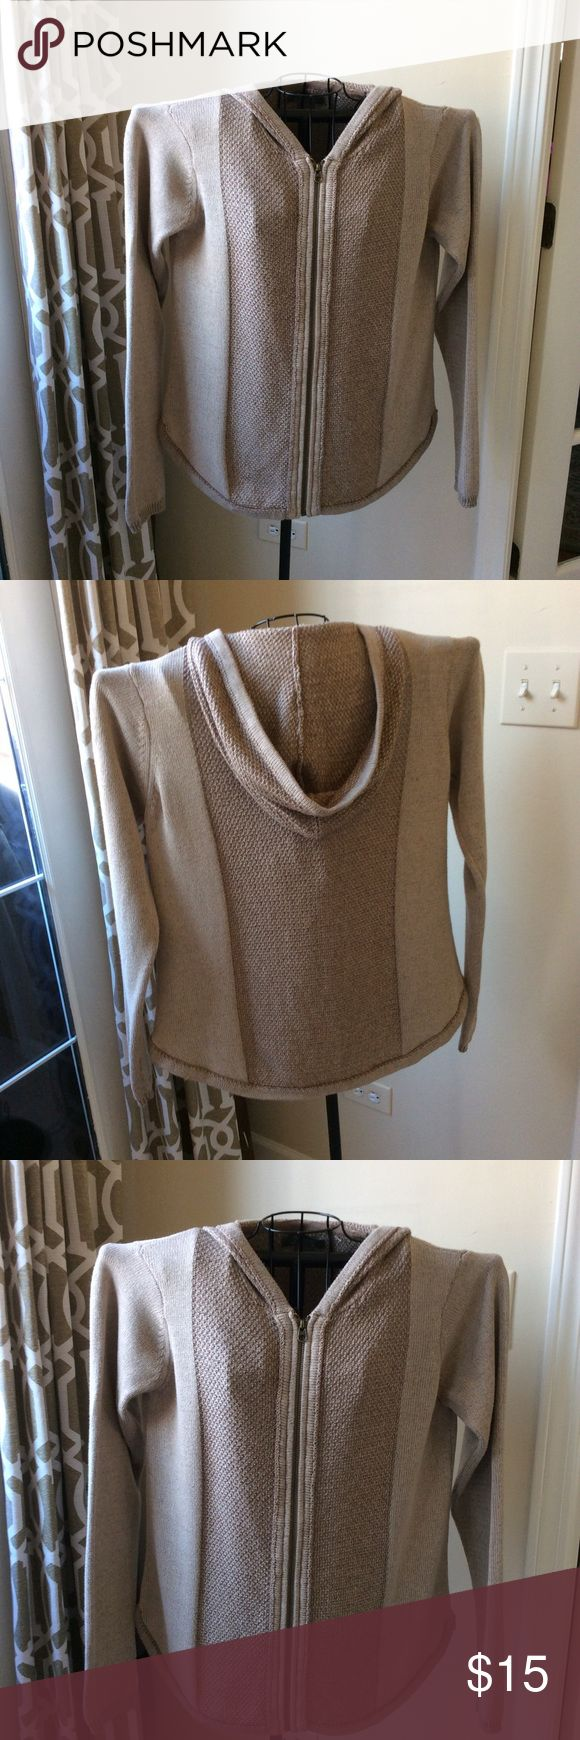 Hooded Zip Up Sweater Tan and beige zip up sweater with hood by Natural Reflections. Sz M gently used Natural Reflections Sweaters Cardigans